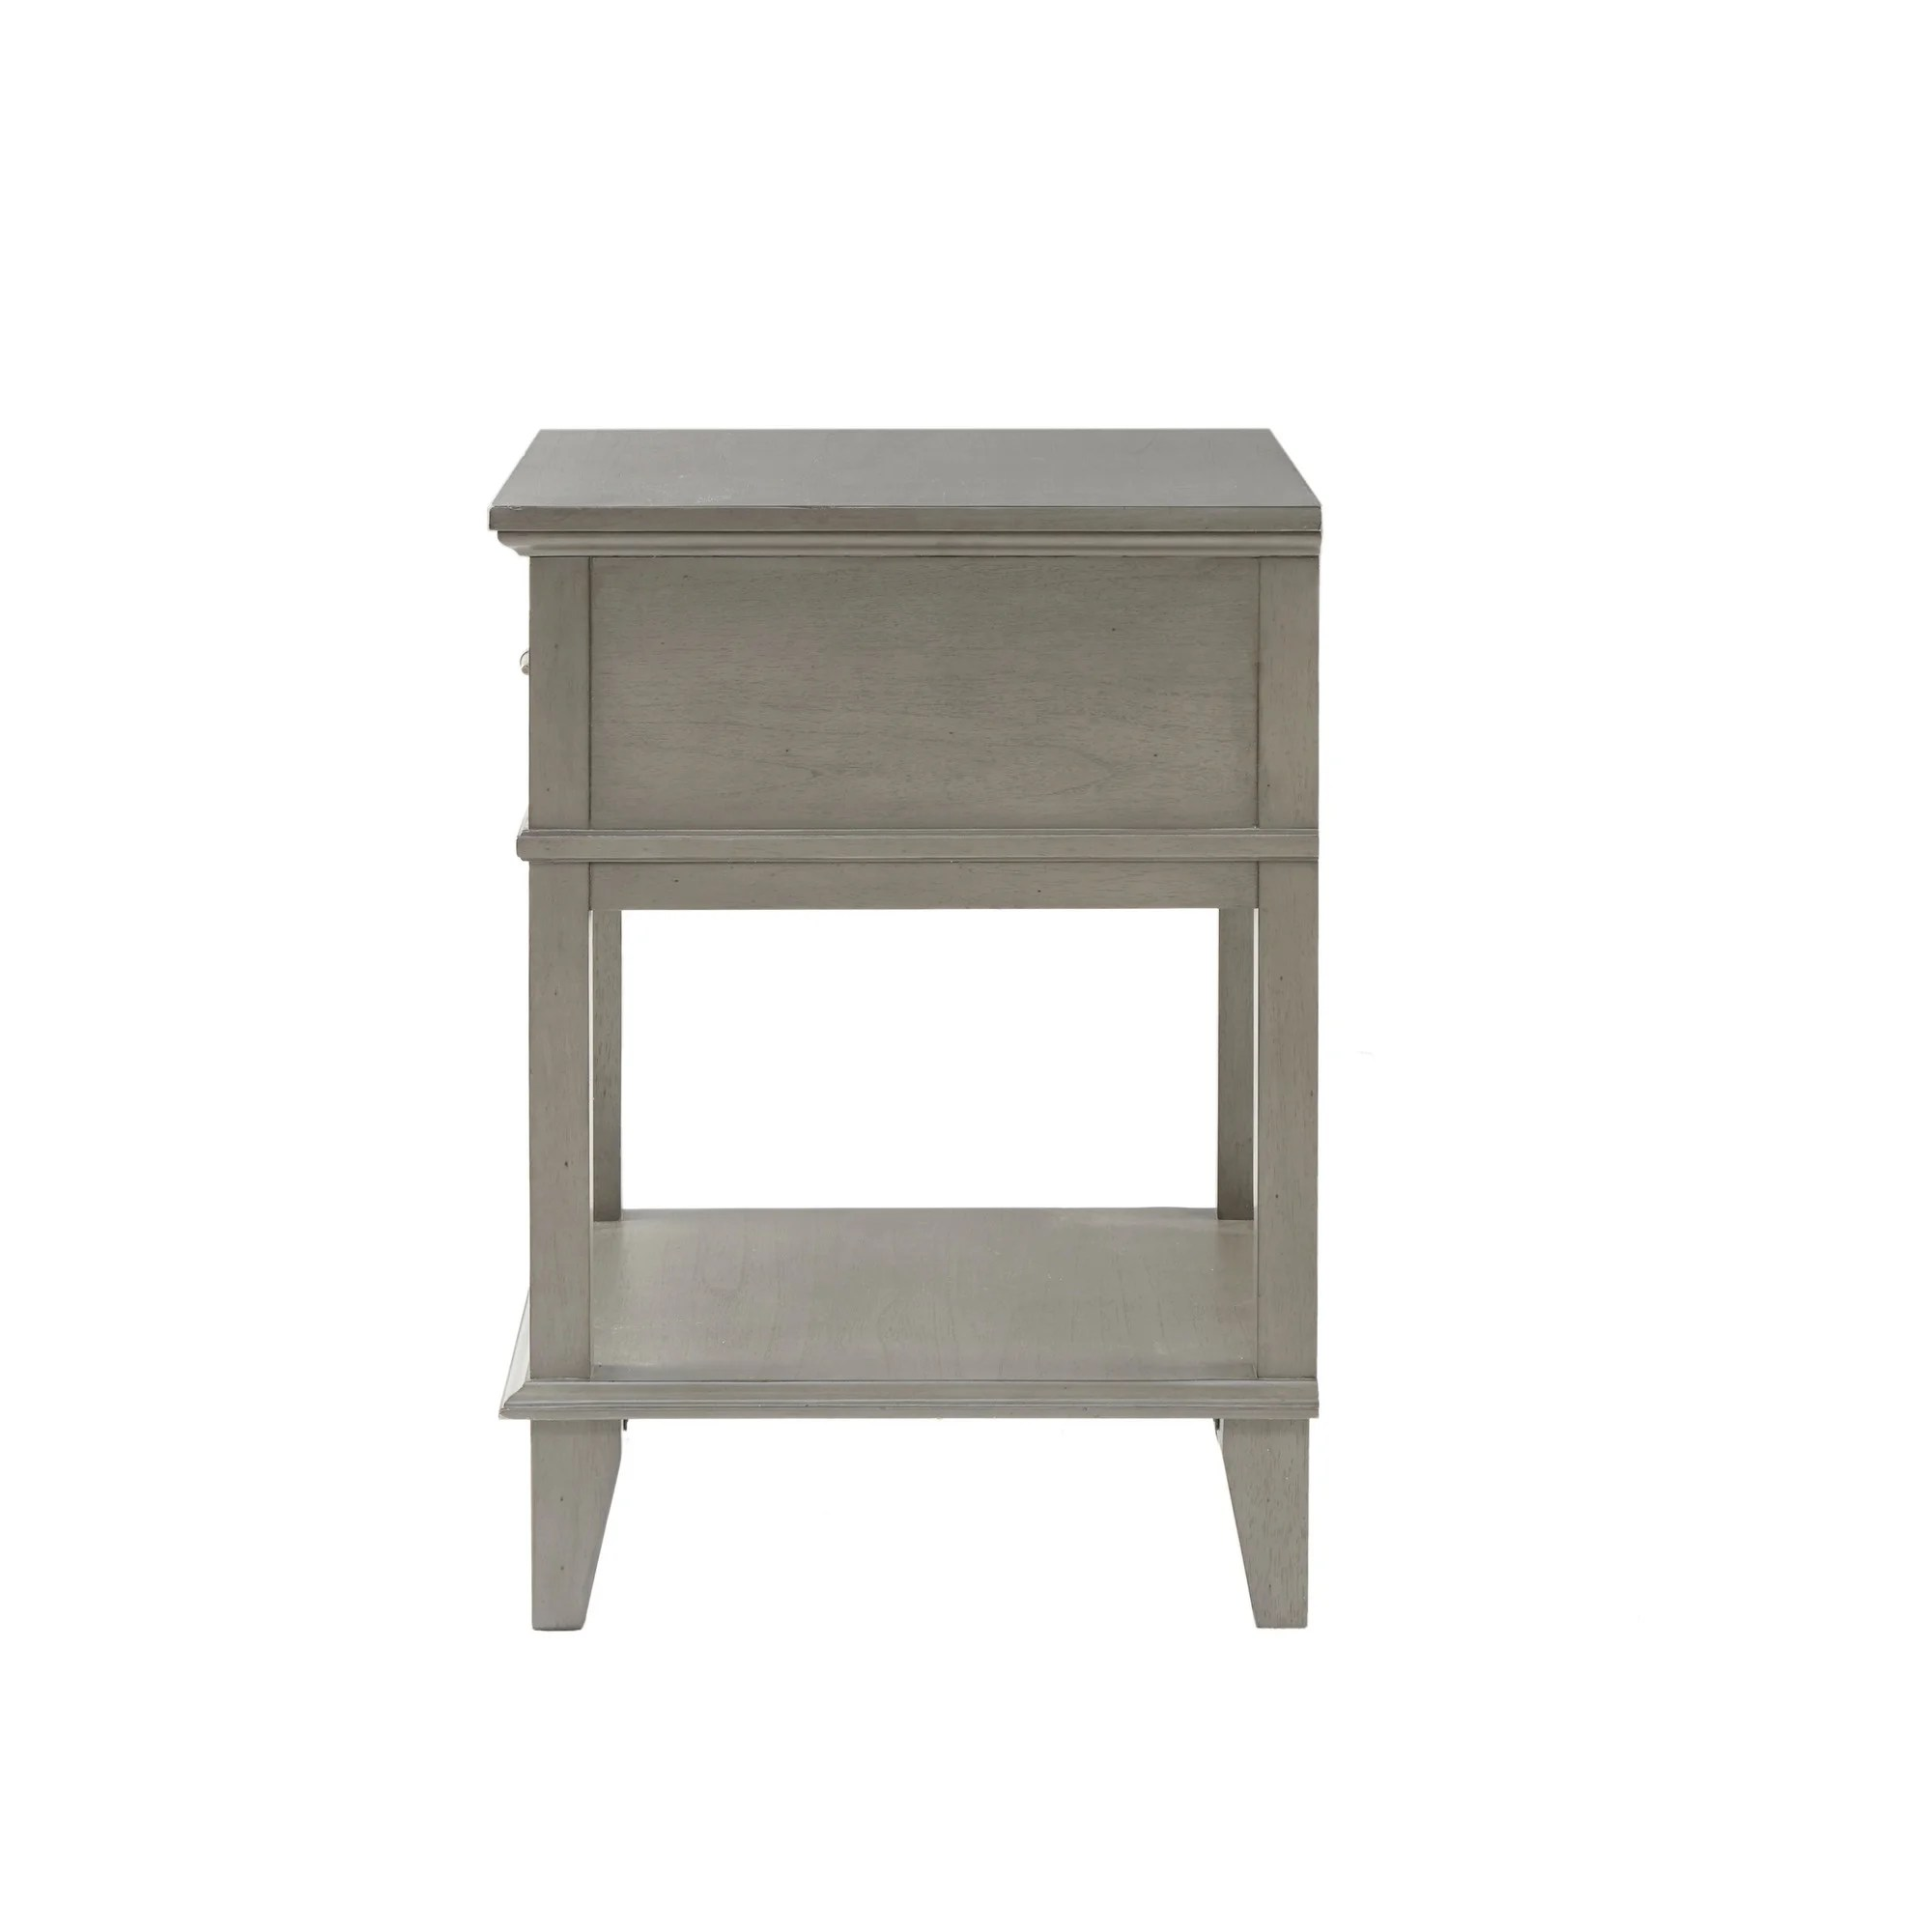 Madison Park Signature Yardley Reclaimed Grey Nightstand